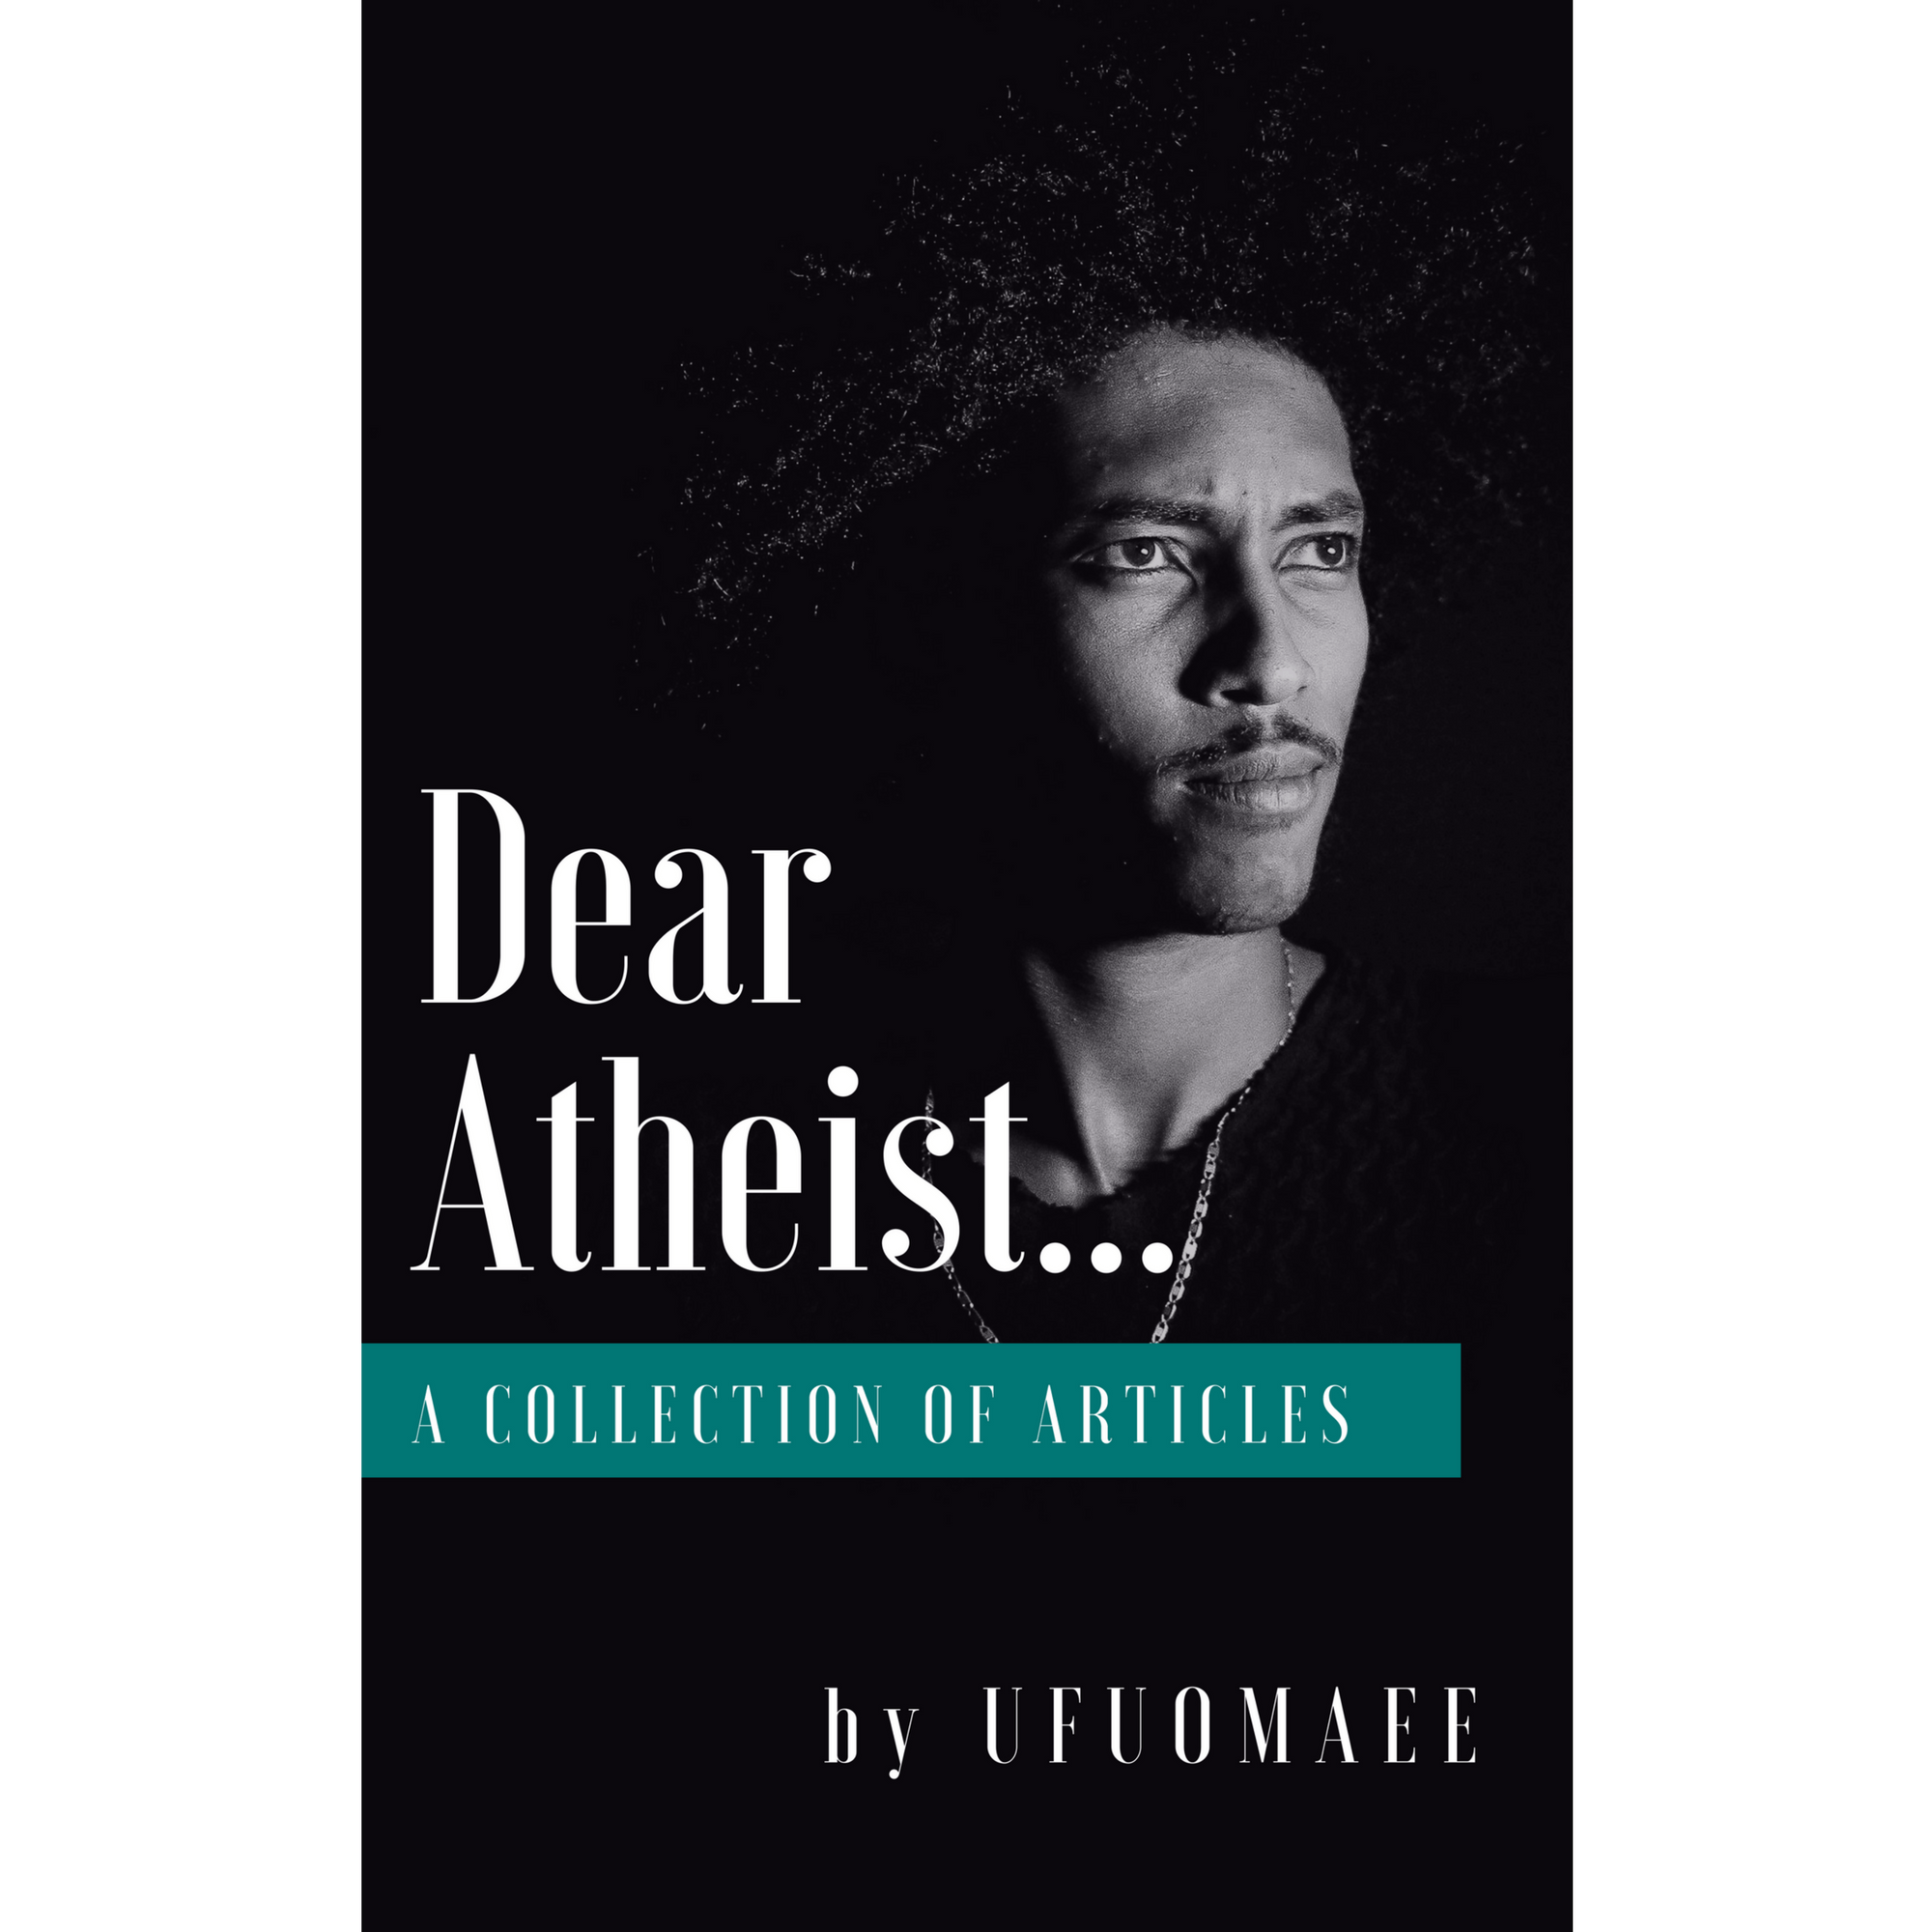 Ufuomaee's Collections - Dear Atheist...